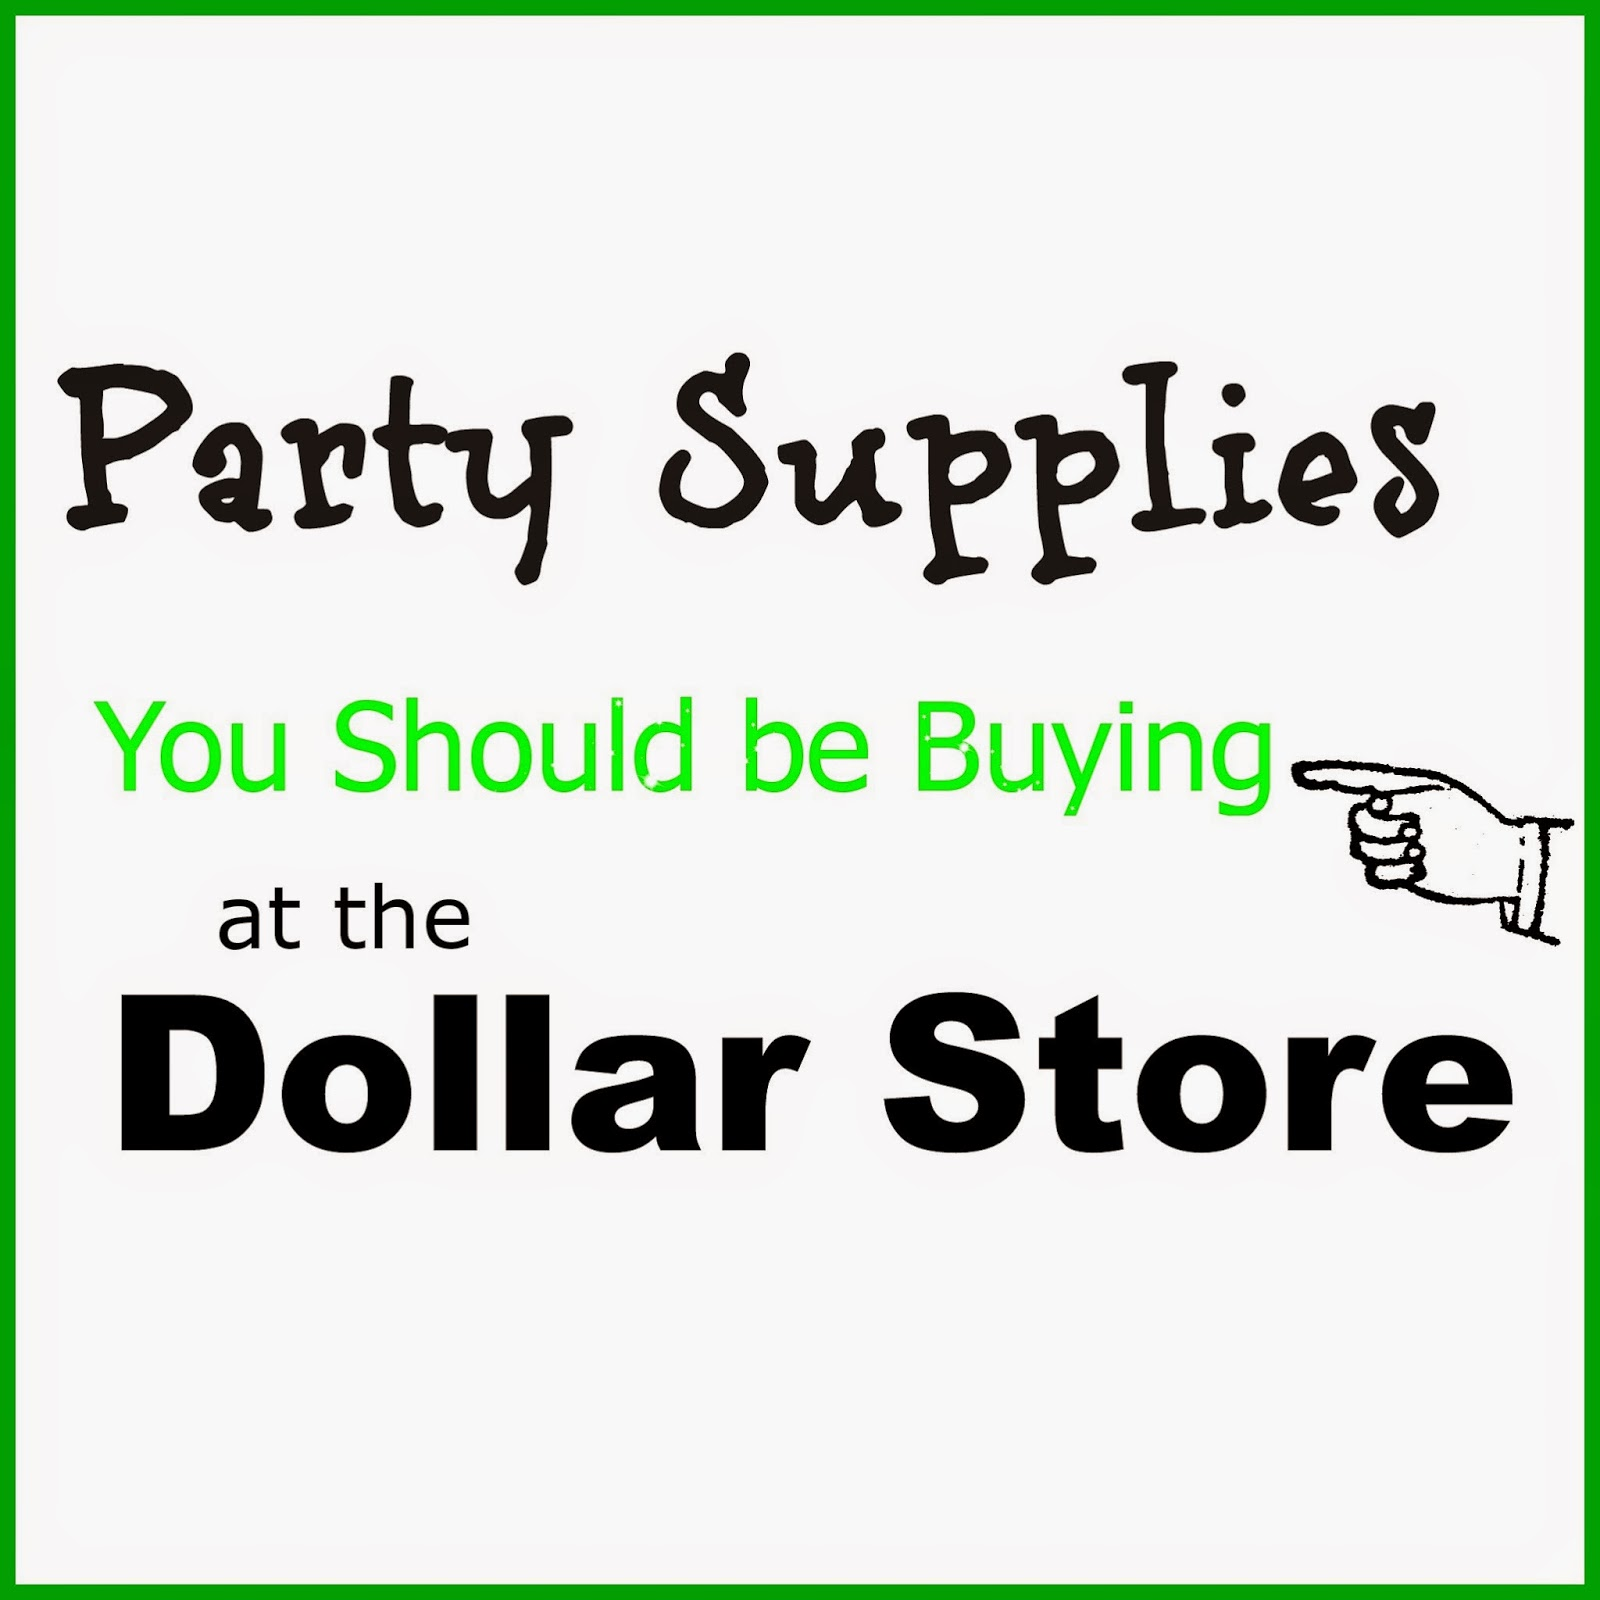 Party Supplies You Should Buy at the Dollar Store